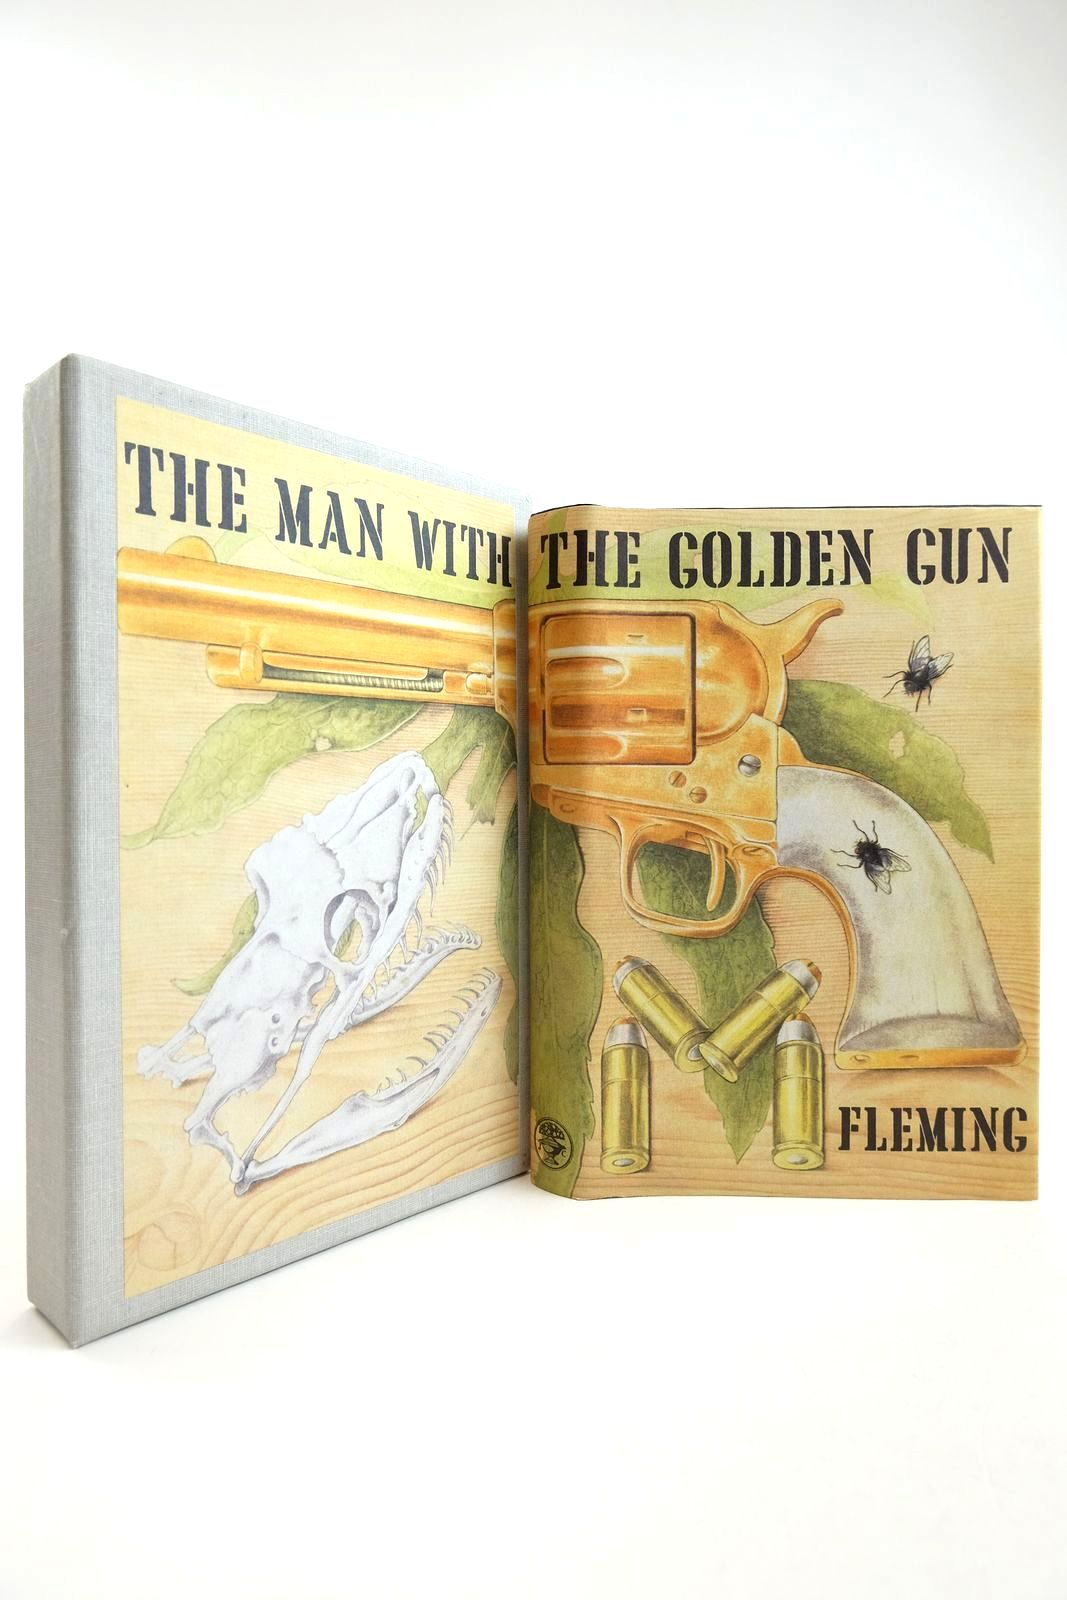 Photo of THE MAN WITH THE GOLDEN GUN written by Fleming, Ian published by The First Edition Library, Jonathan Cape (STOCK CODE: 2134204)  for sale by Stella & Rose's Books